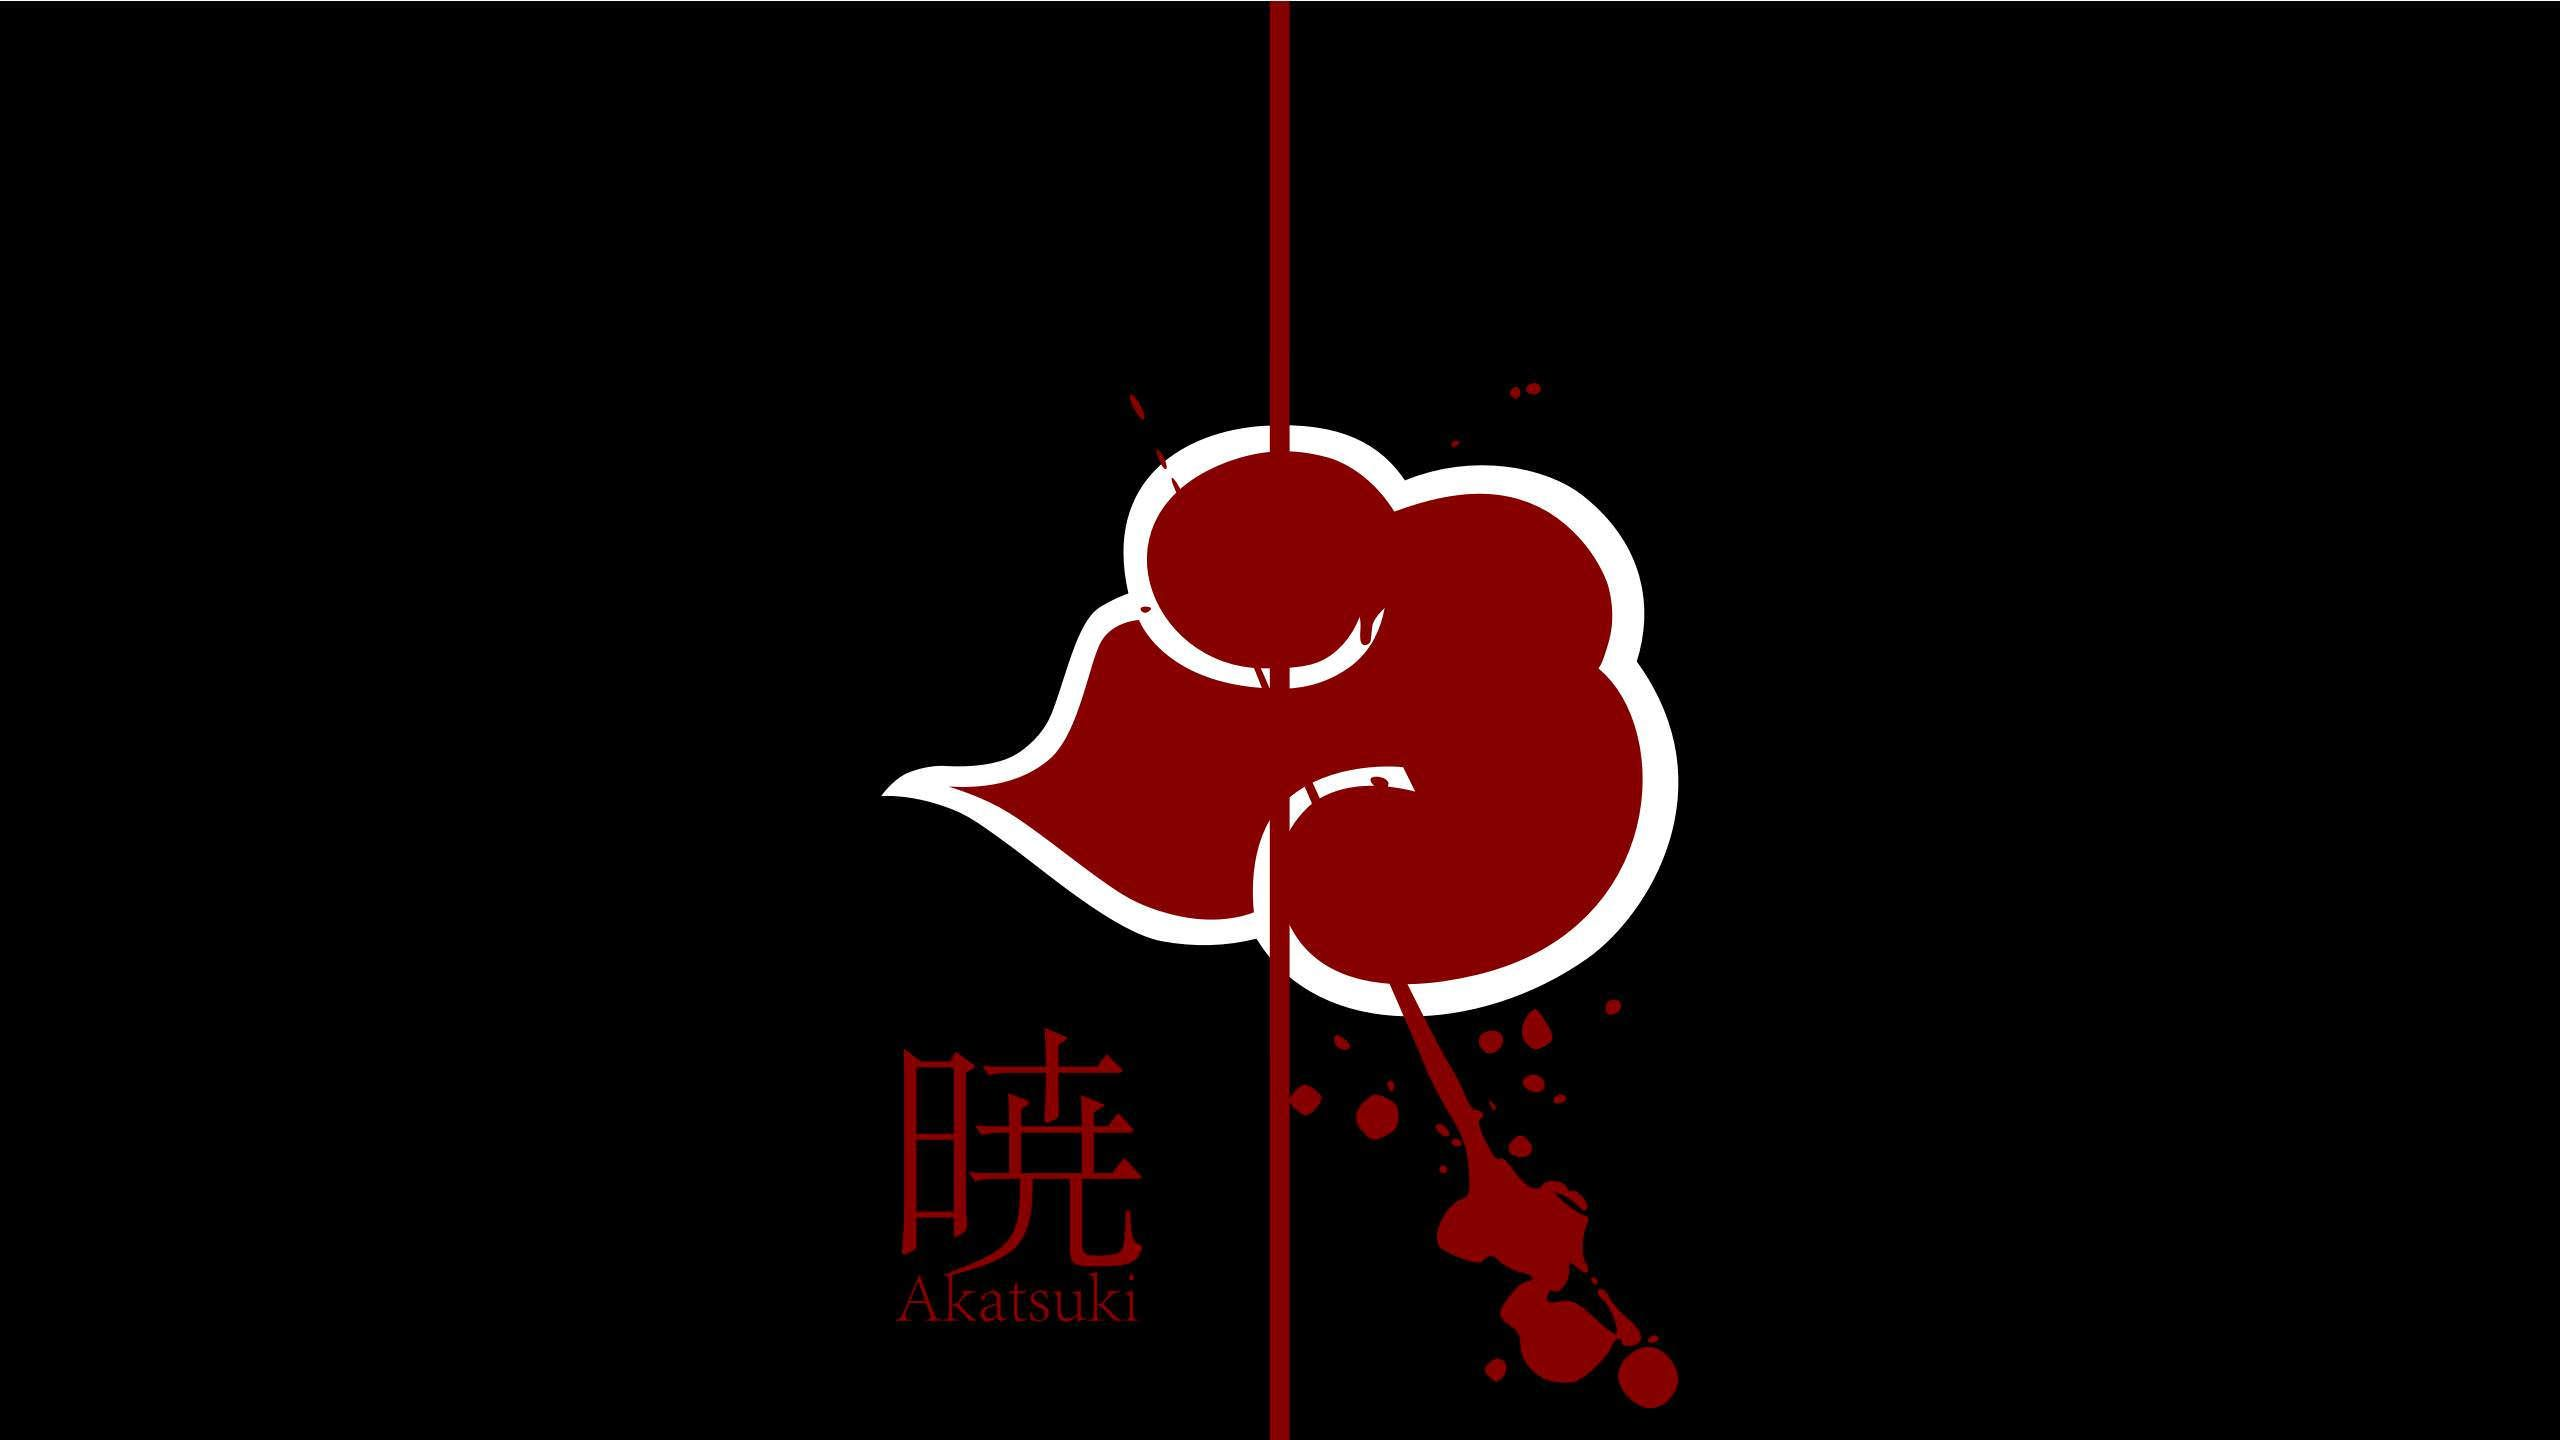 Naruto Akatsuki Sign Logo Akatsuki, Cool wallpapers for